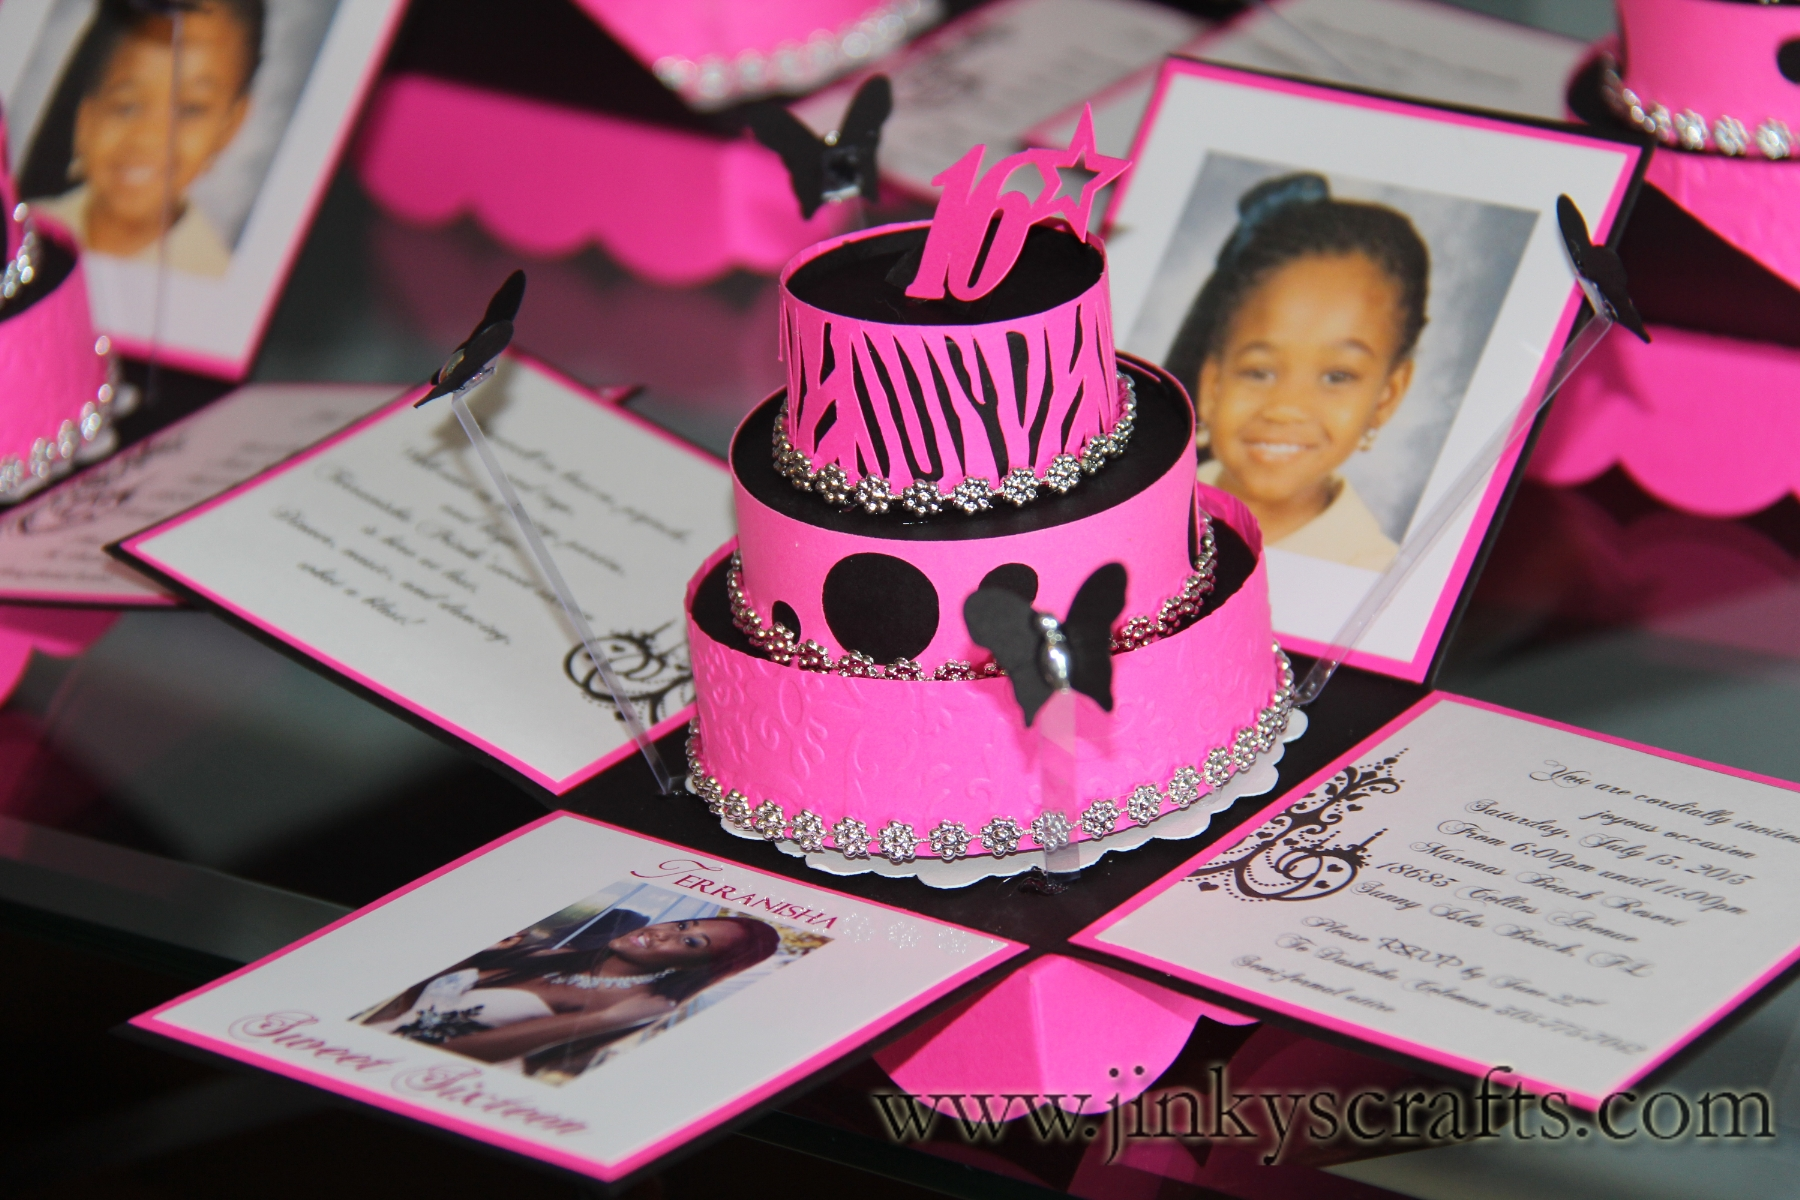 Zebra Print Exploding Box Invitations Jinkys Crafts